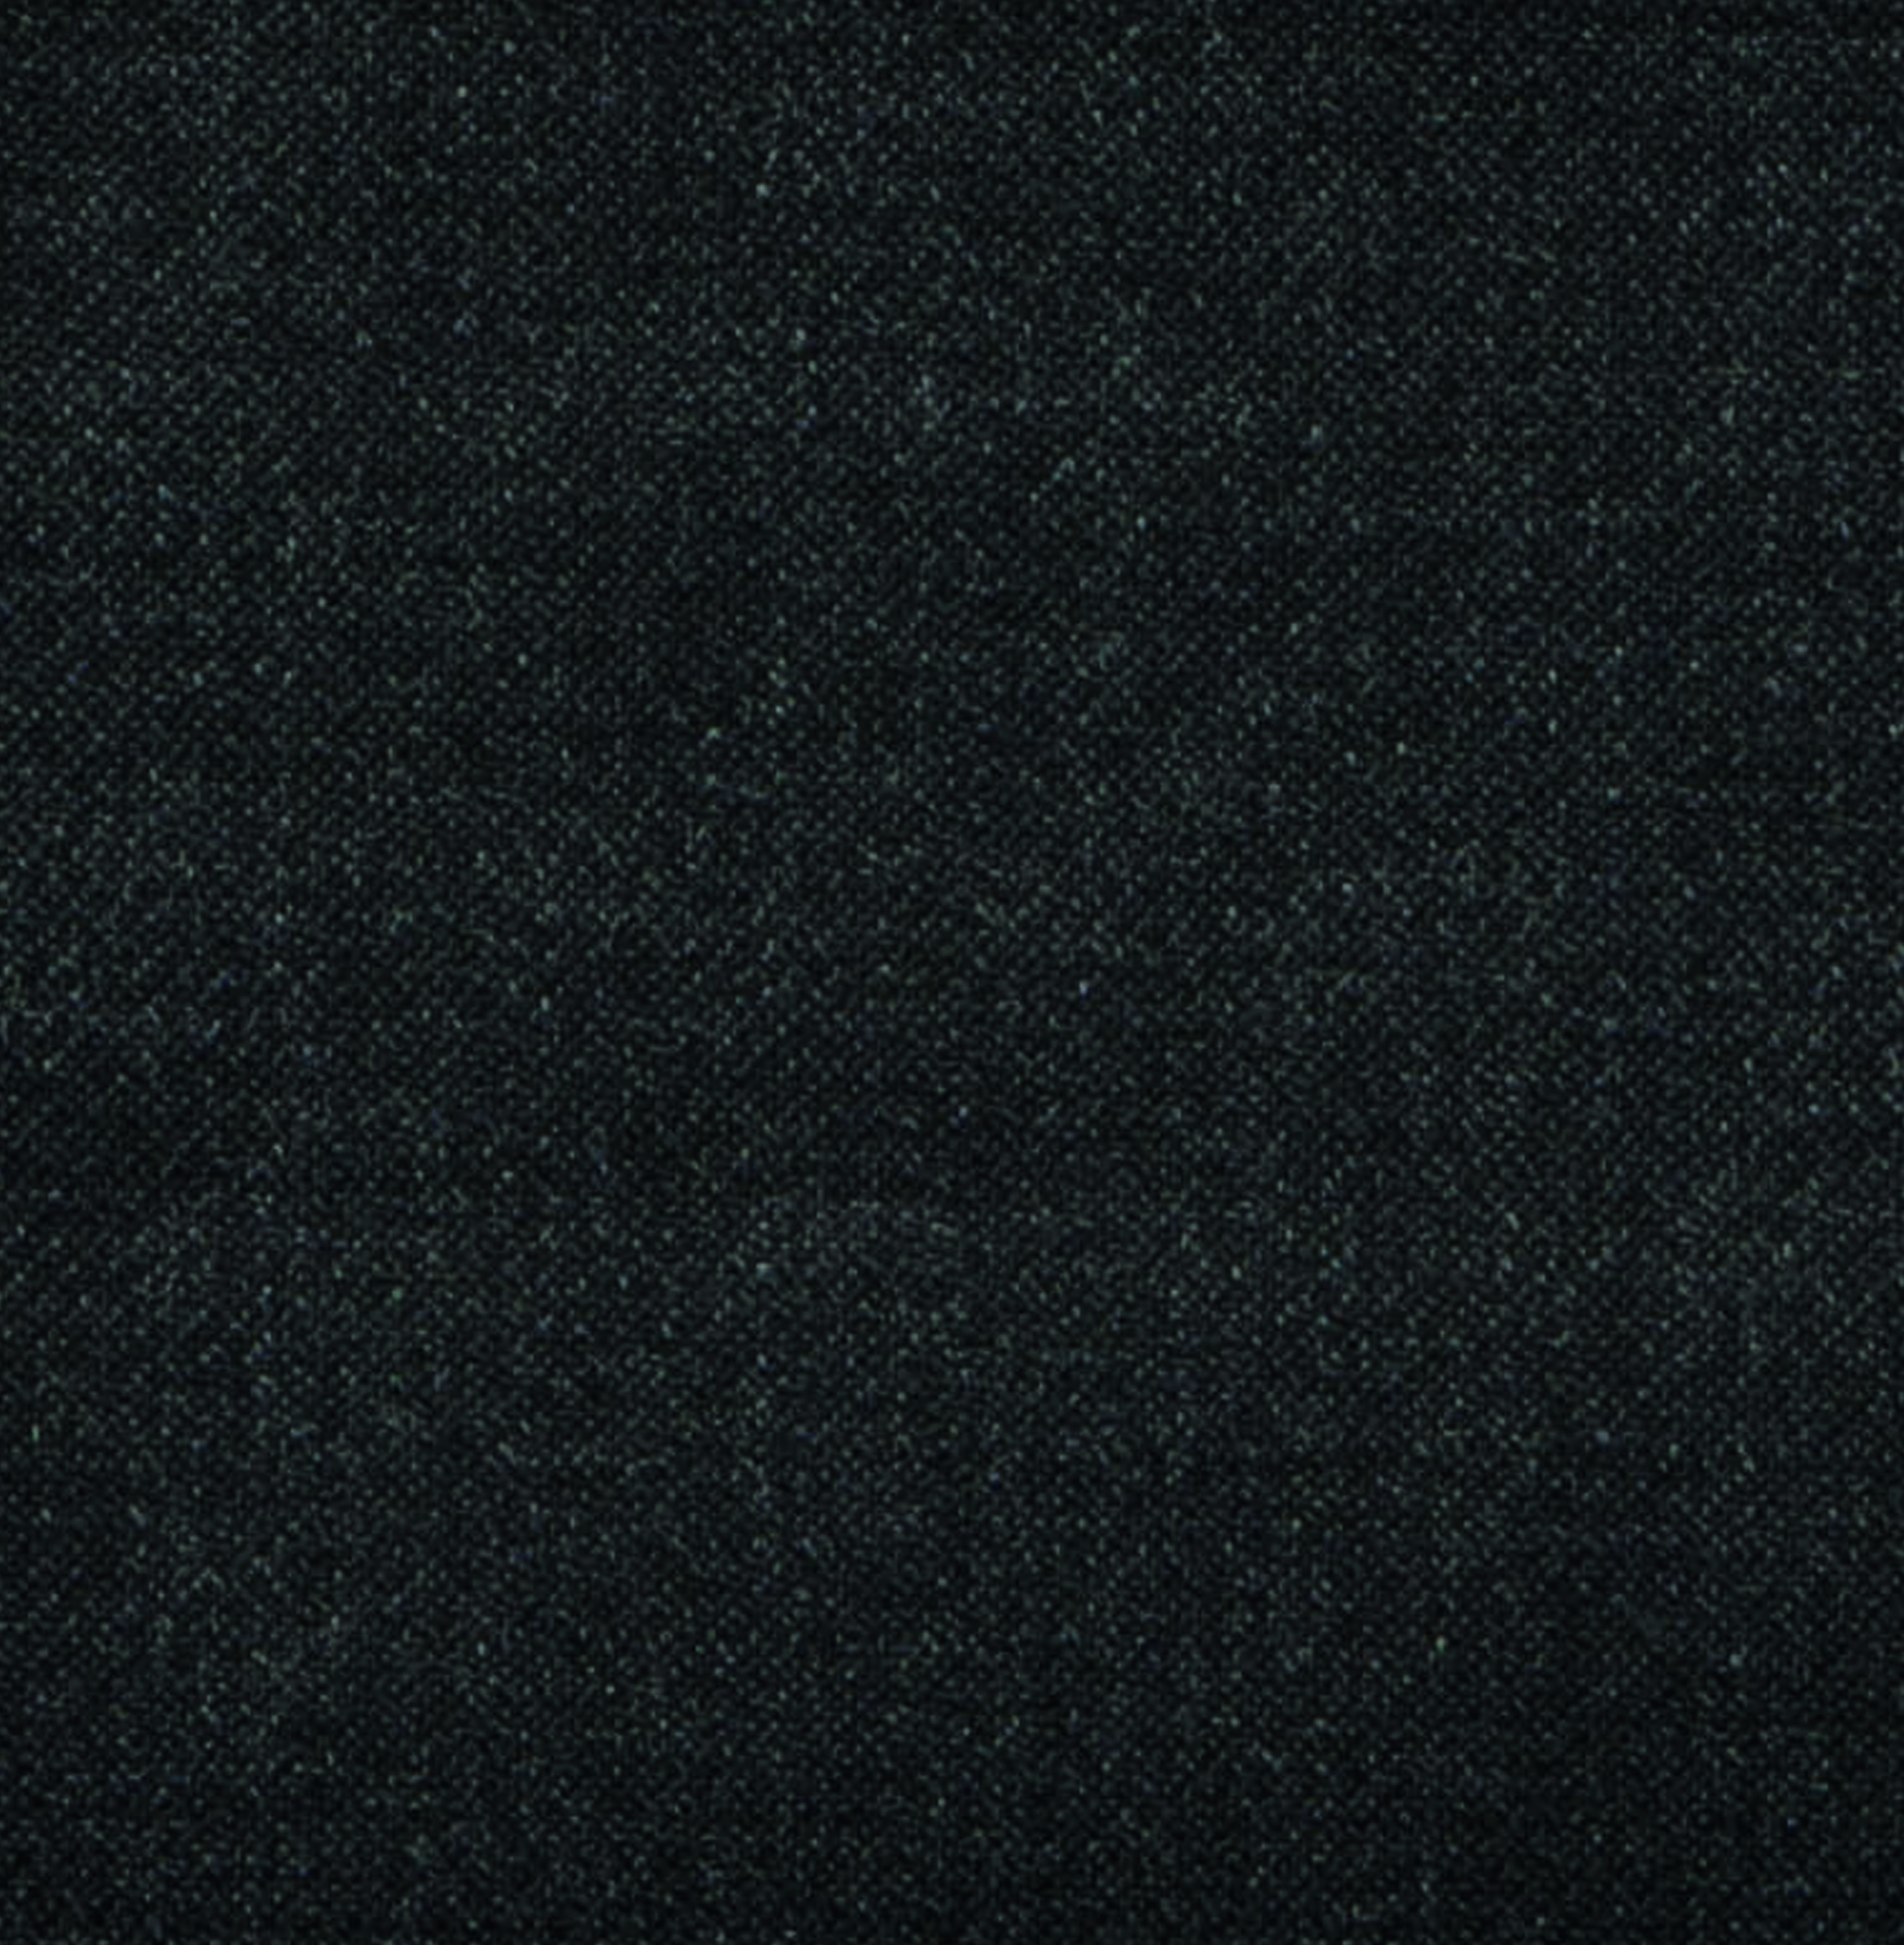 Buy tailor made shirts online - Luxurious Pure New Wool - Charcoal. No lining